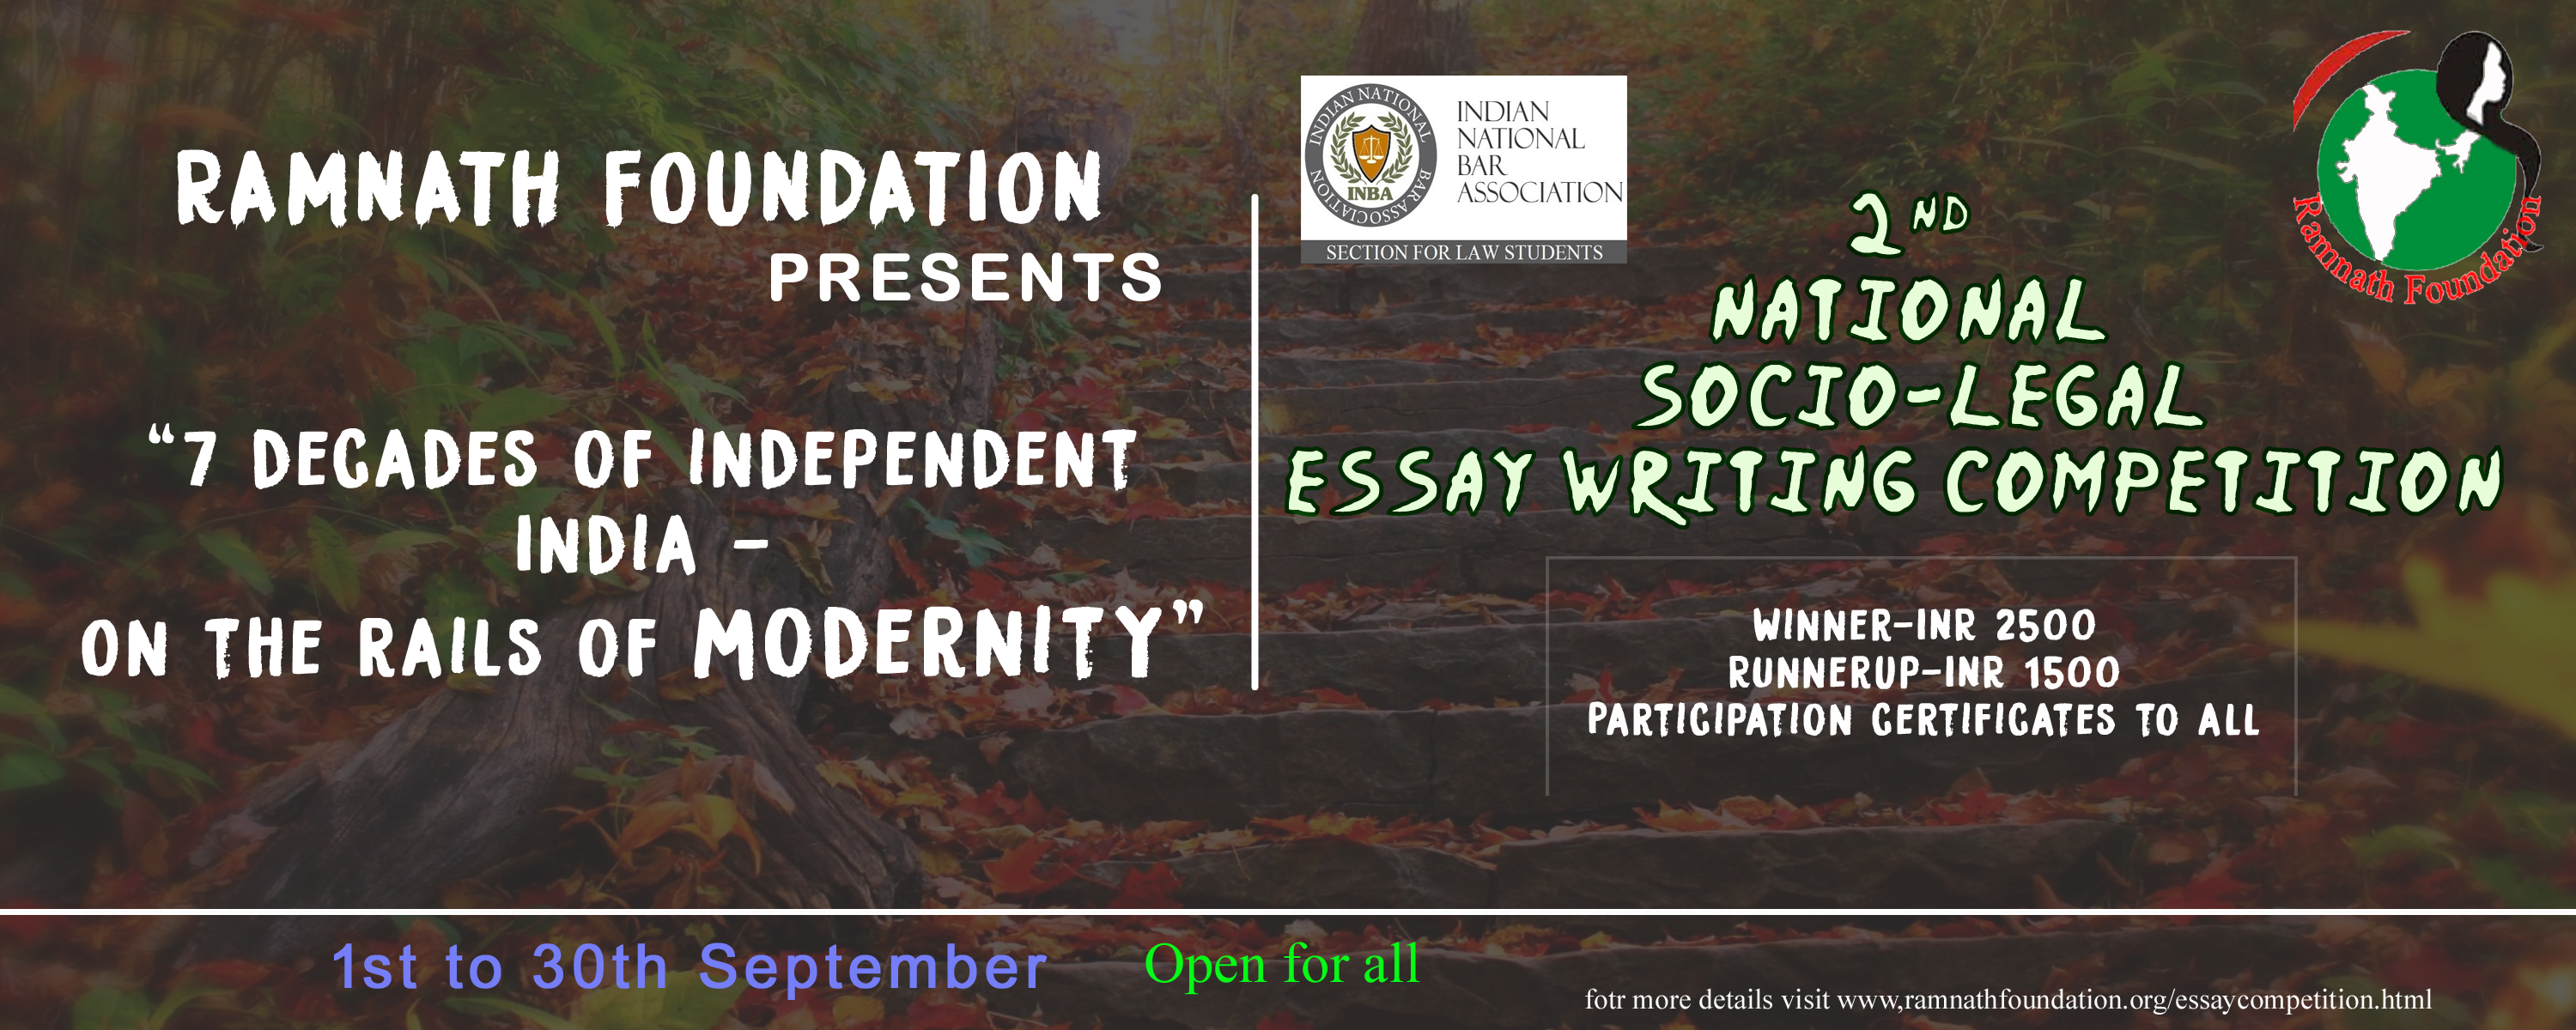 legal essay competition archives lawctopus ramnath foundation socio legal essay competition on 7 decades of independent prizes worth rs 4000 register by oct 10